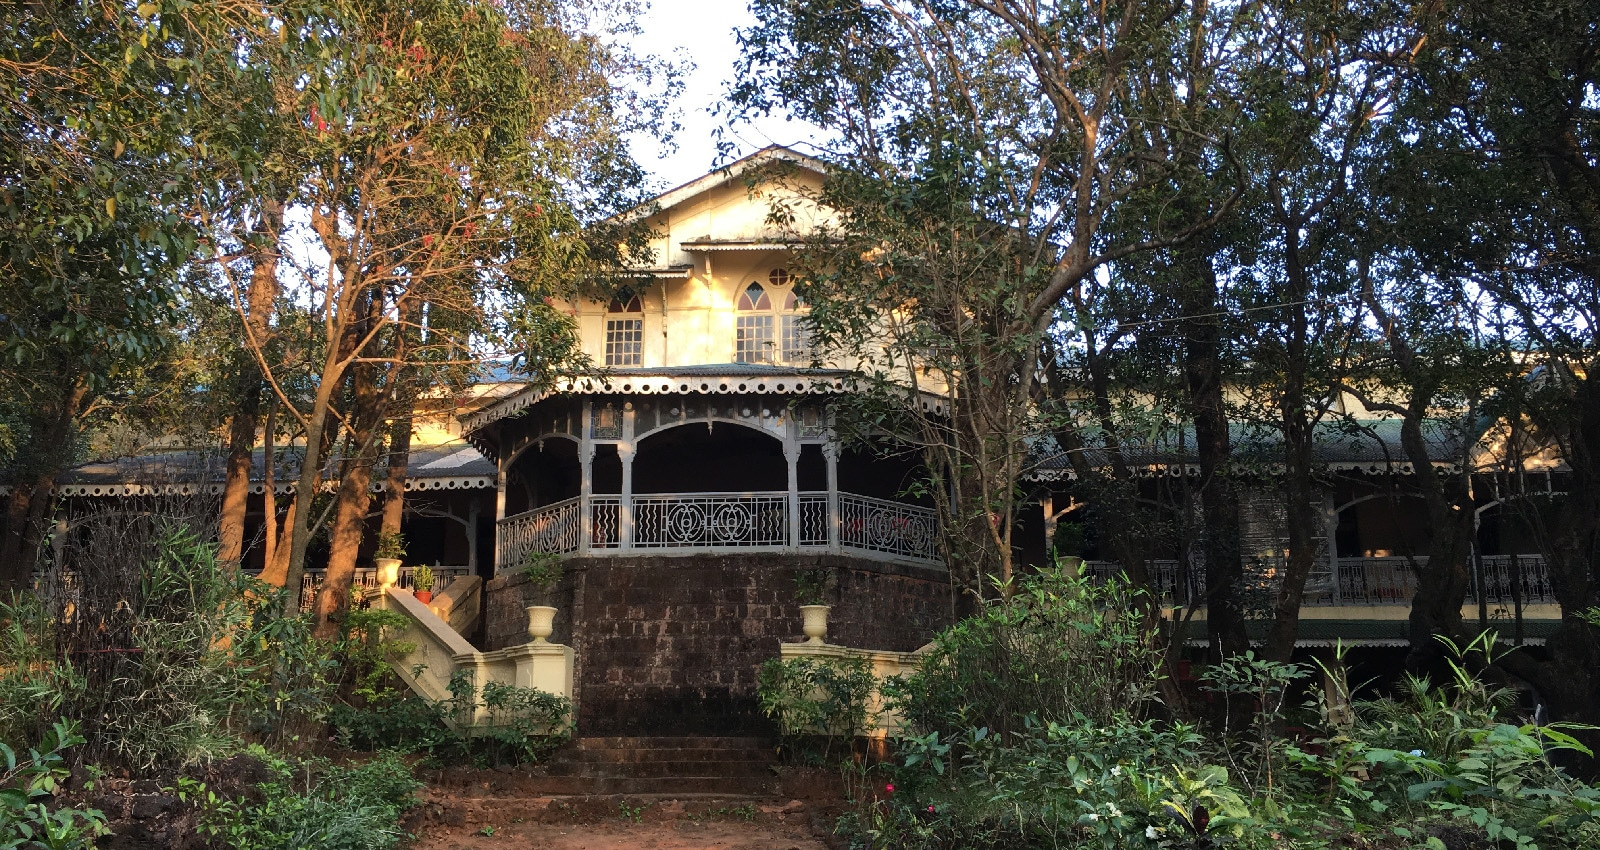 Viw of the verandah at Dune Barr House Verandah in the Forest locatad in Matheran Near Mumbai